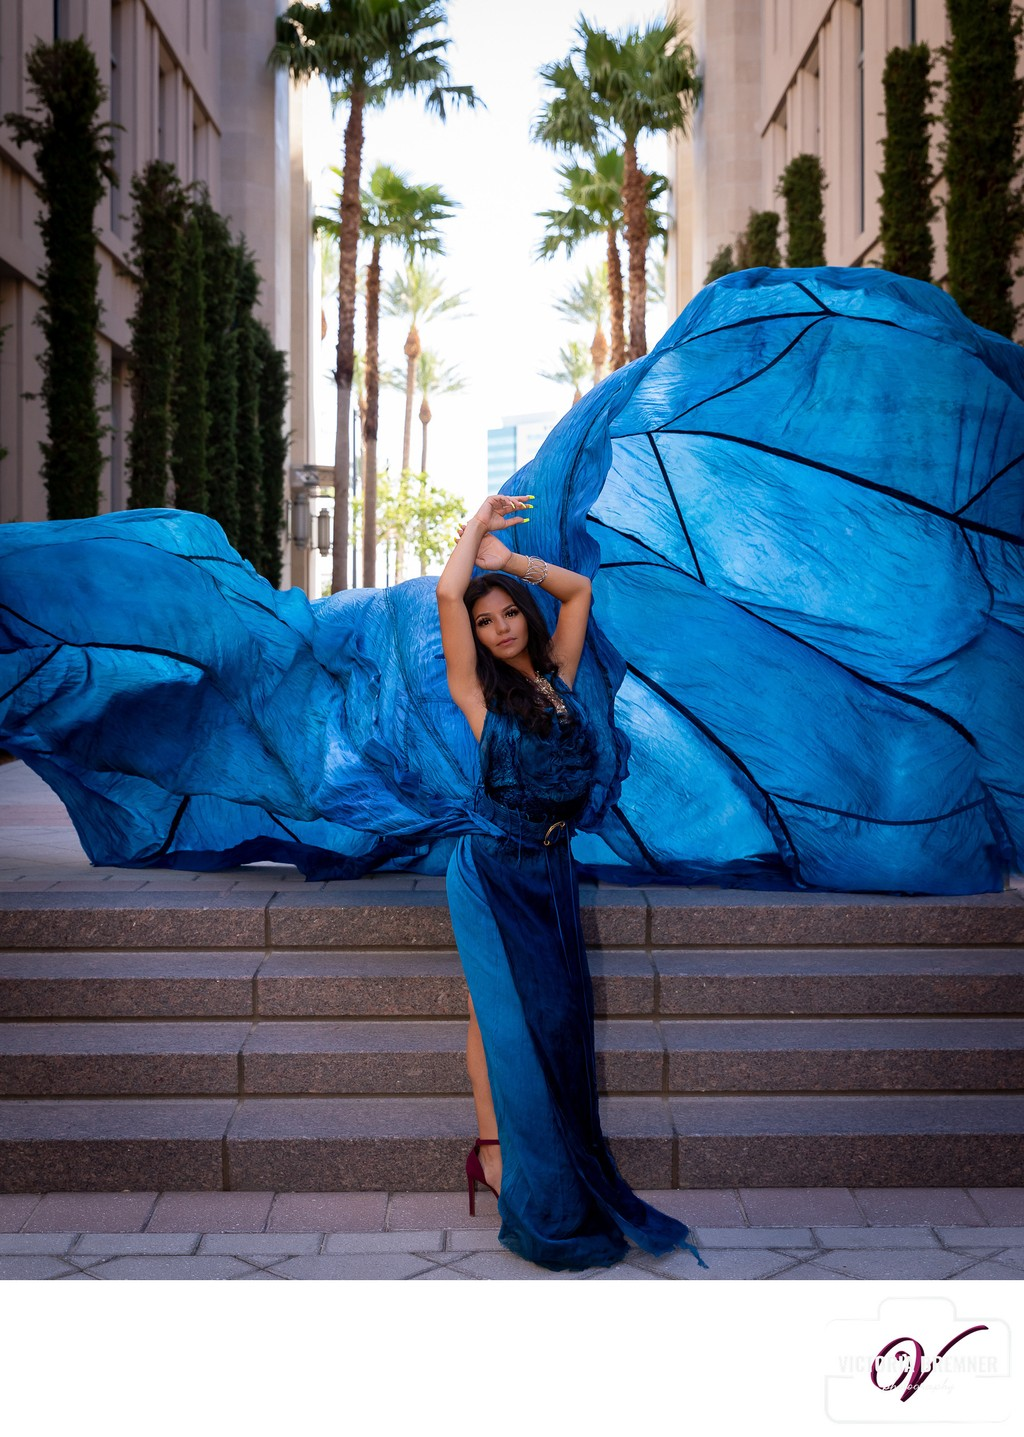 Las Vegas Parachute Dress Photography Photo Session